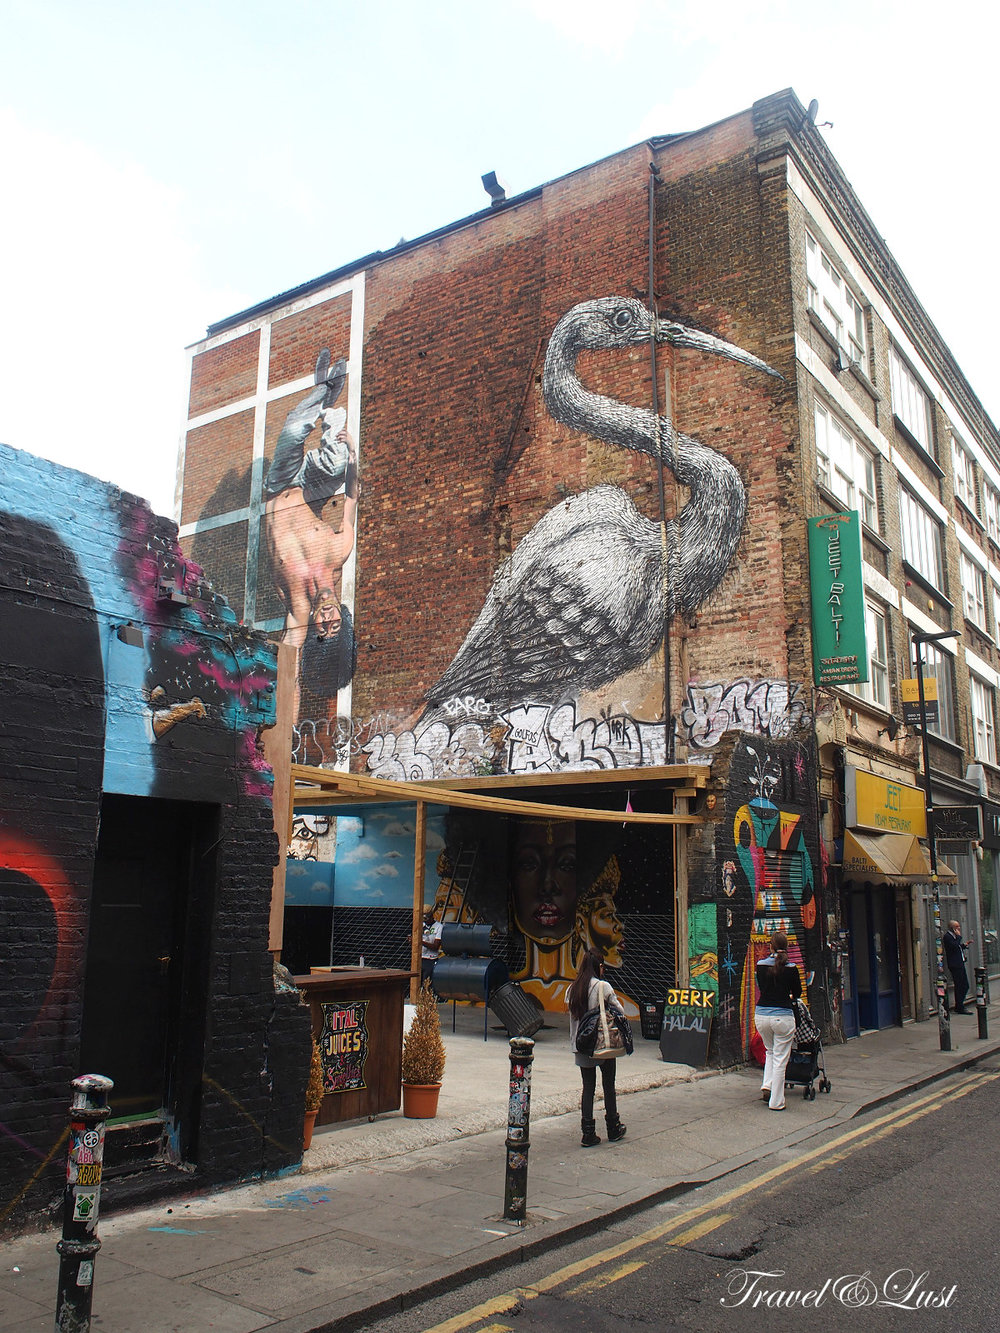 East London is known for its eclectic mix of art, fashion, bars, cafes, vintage shops and an array of graffitis.